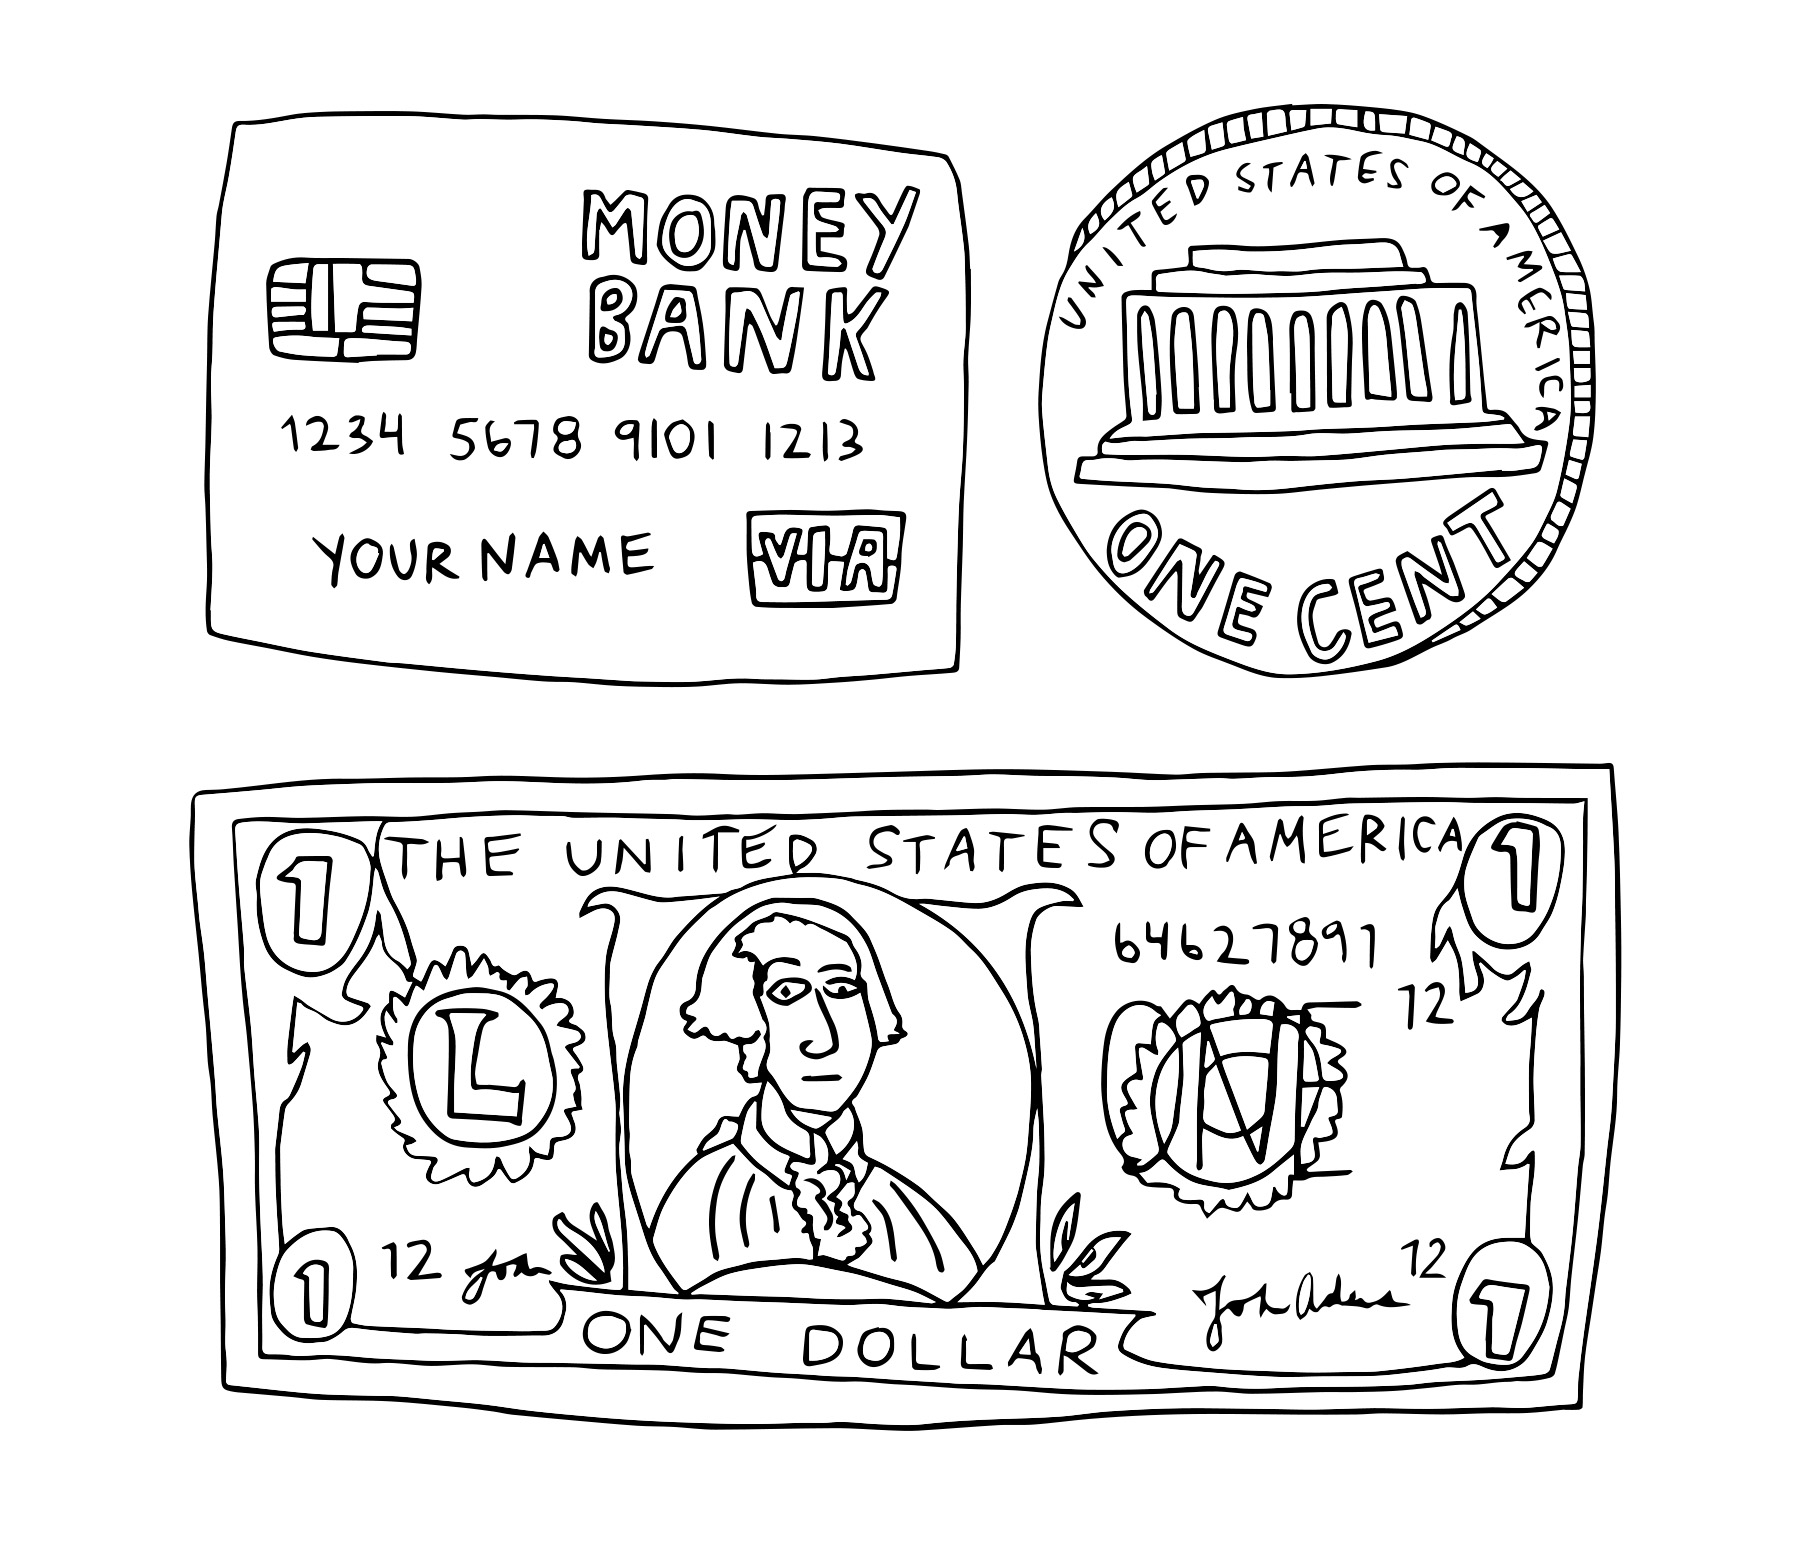 Your savings account will thank you. Art by Stacy Antoville.